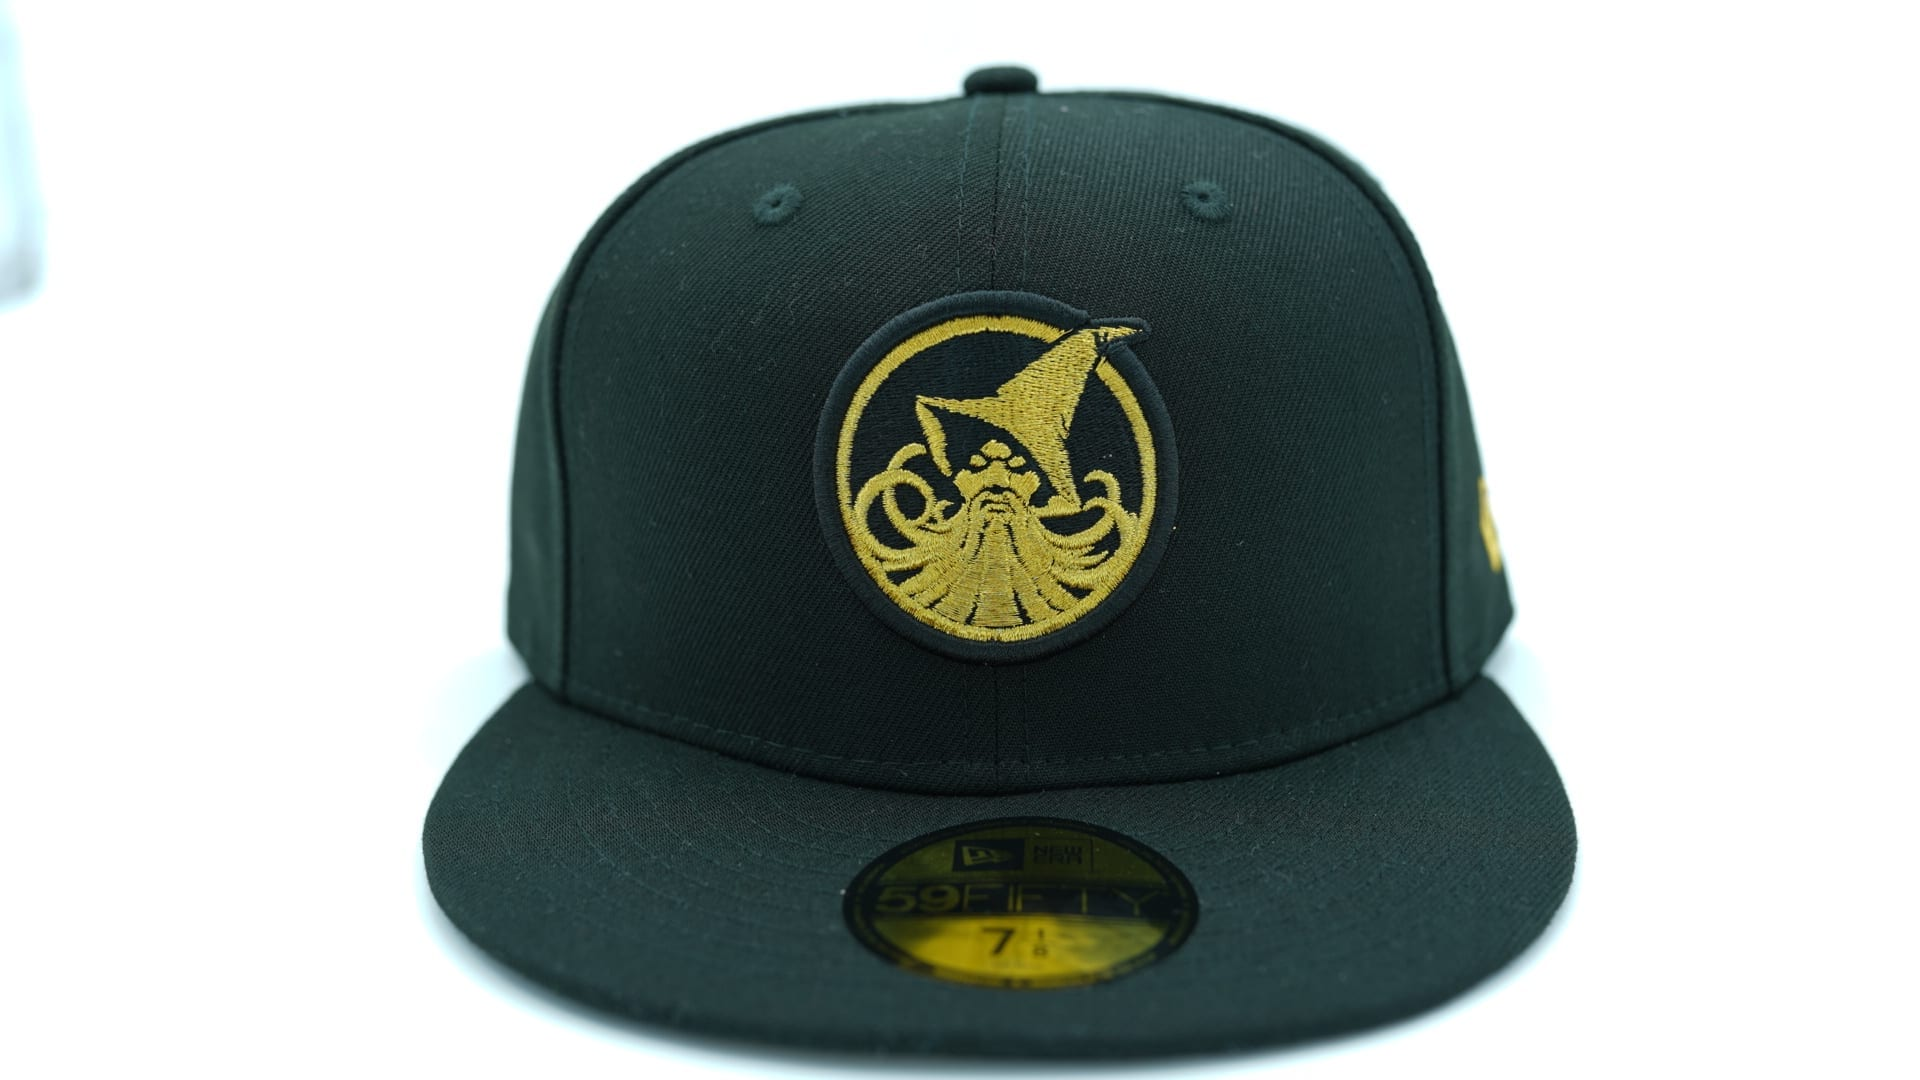 cap collector 39 s creed by john b strictly fitteds